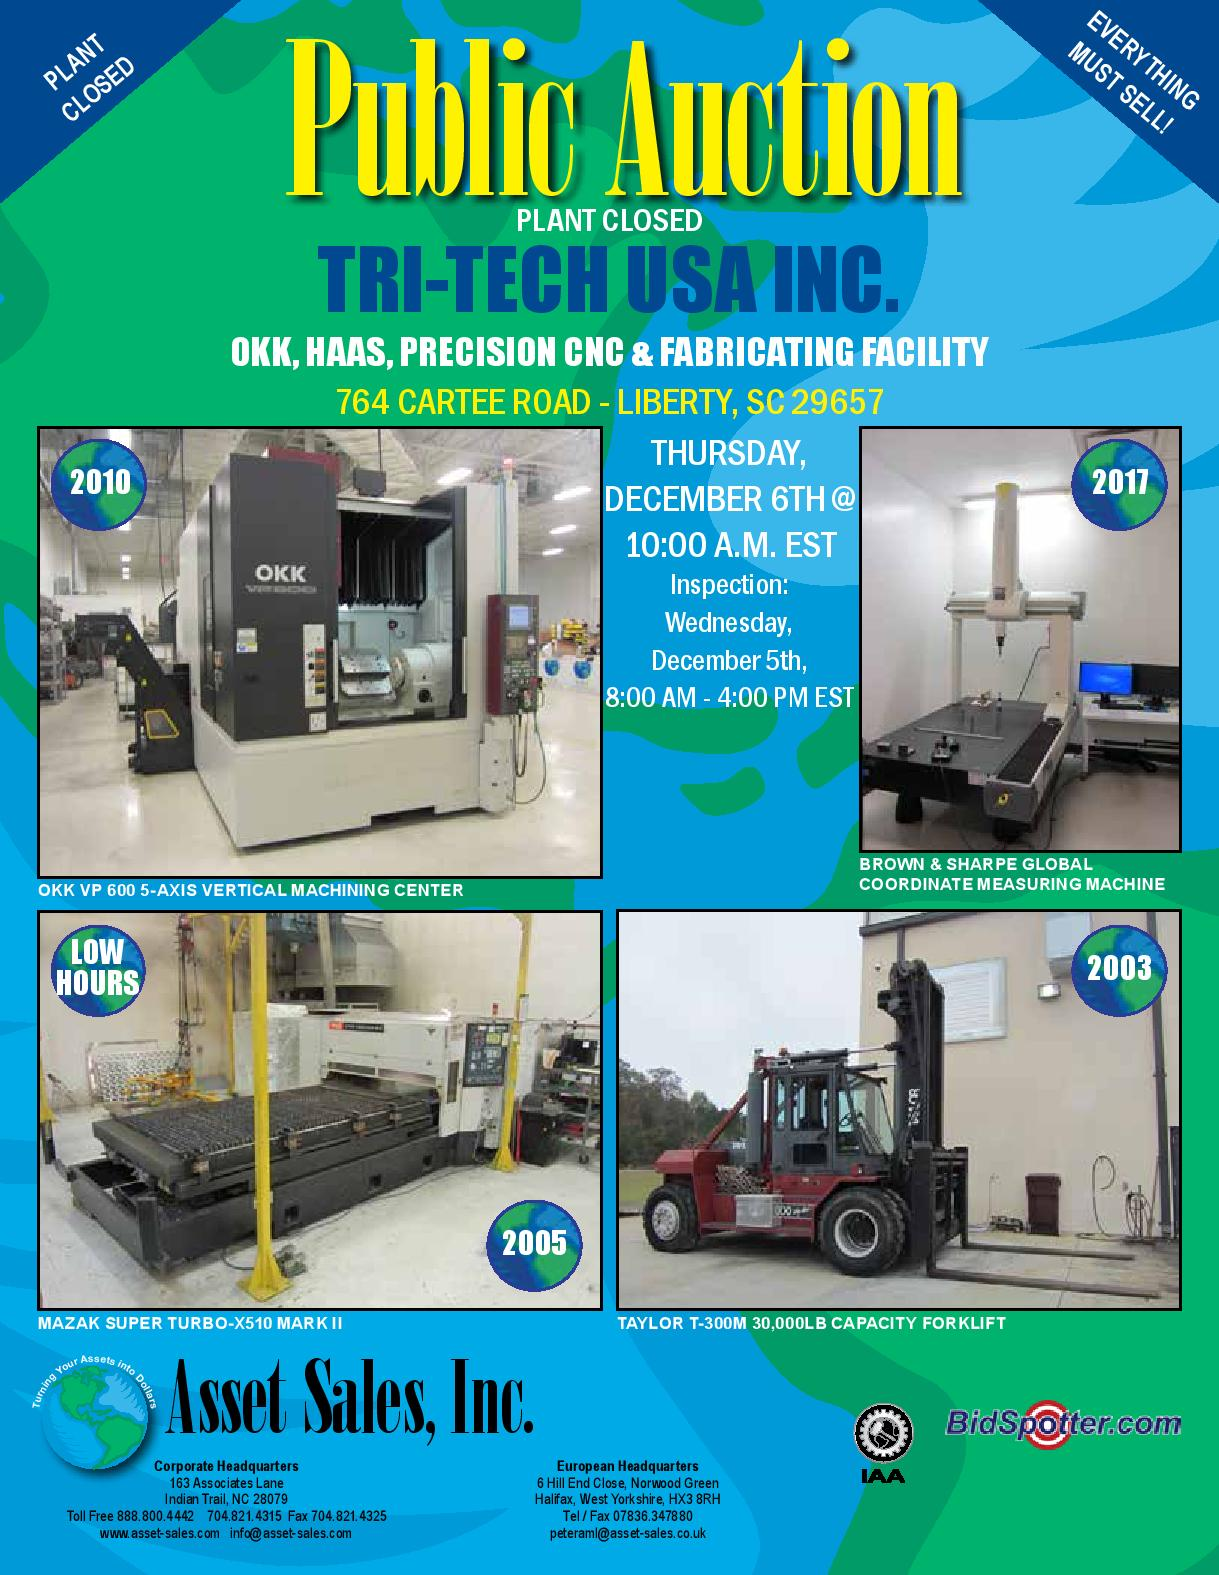 TRI-TECH USA INC. OKK, HAAS, Precision CNC & Fabricating Facility